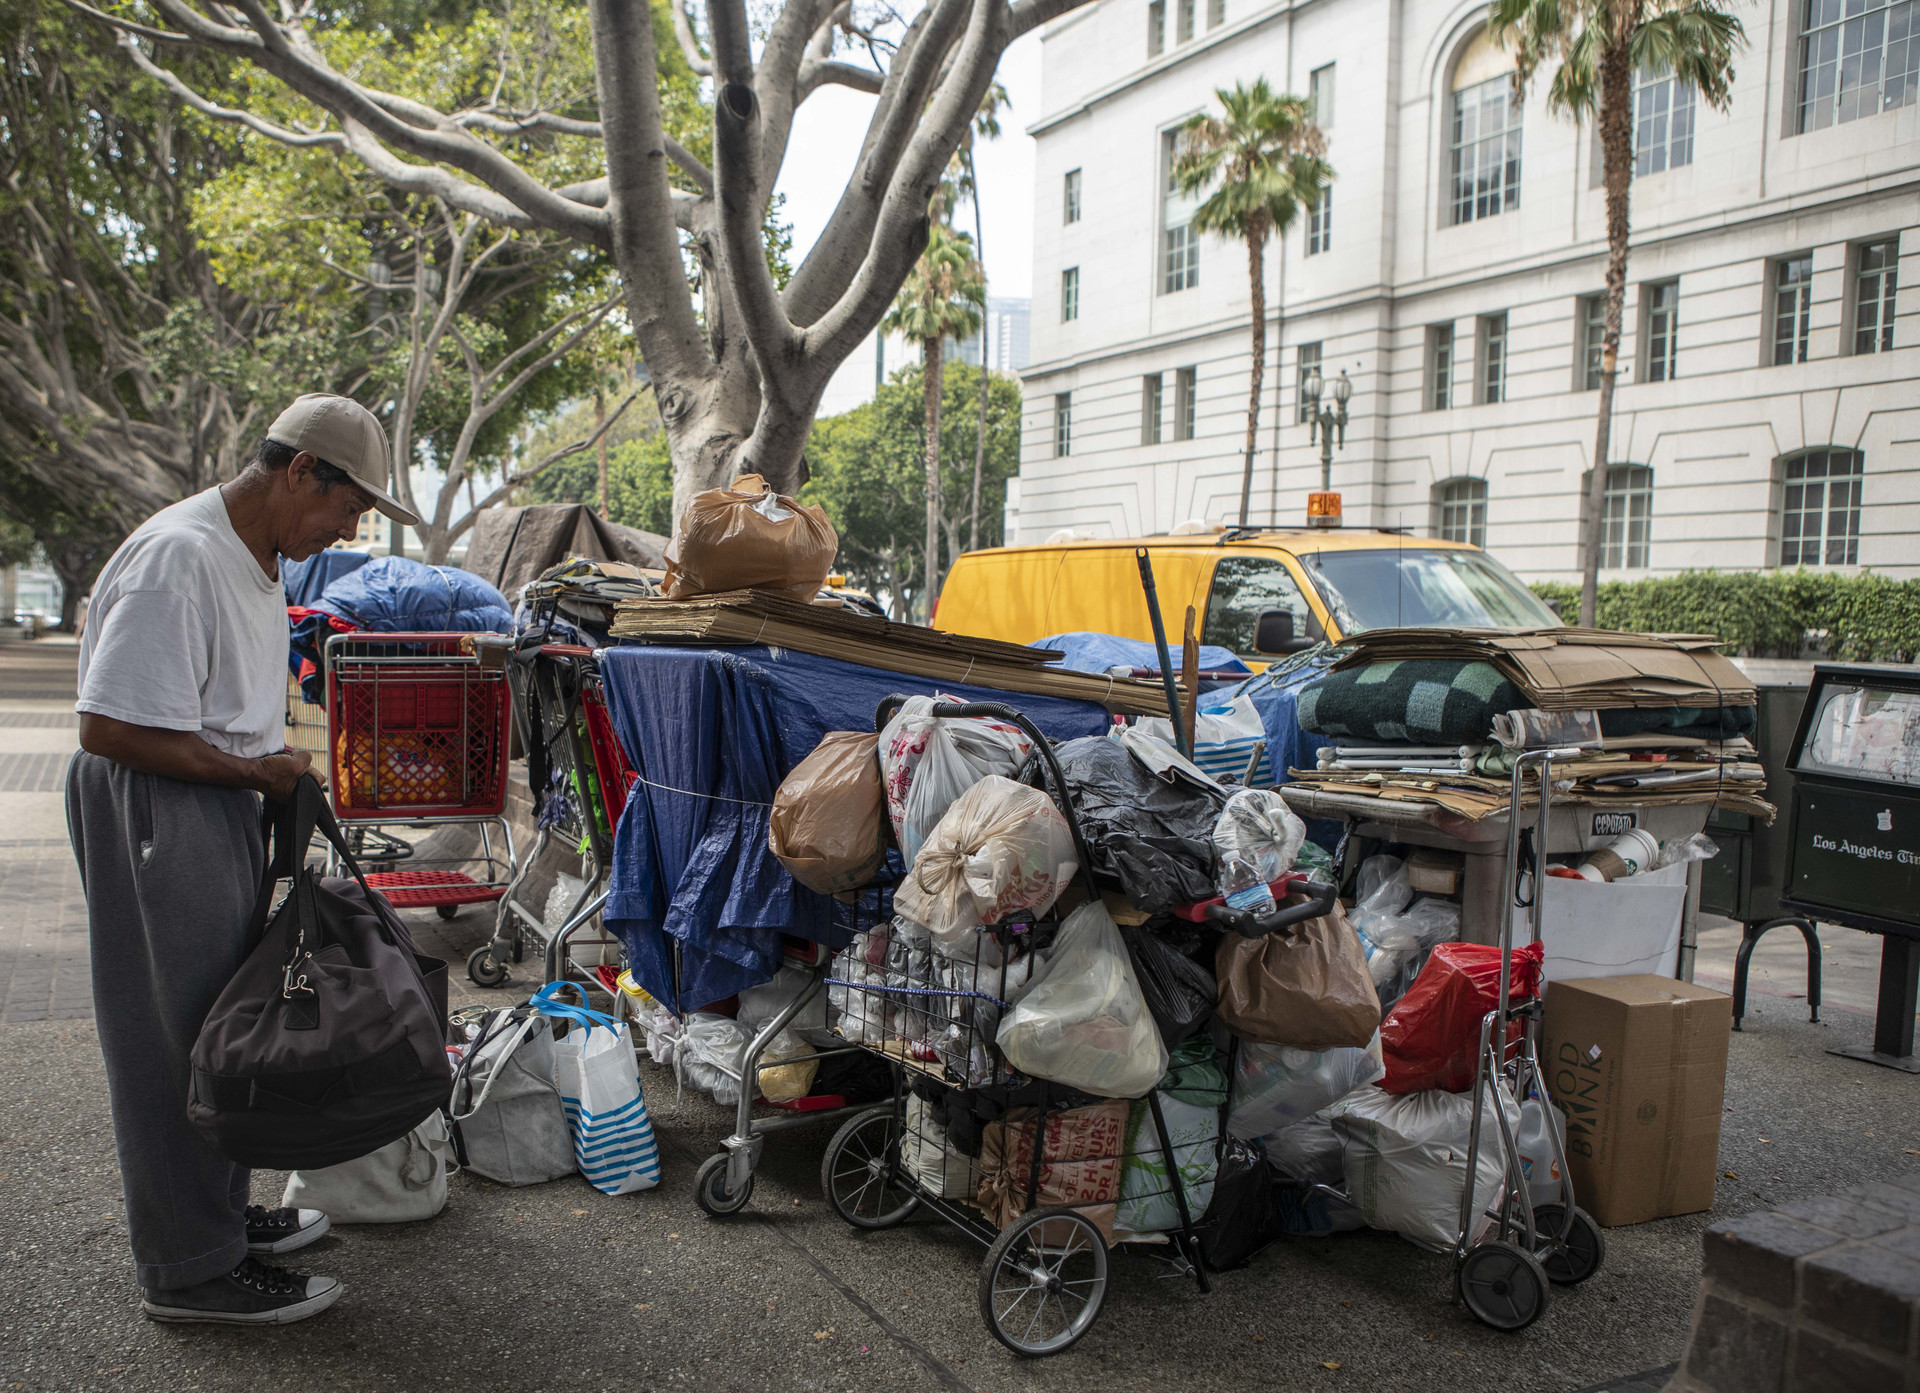 Esteban Gonzalez keeps watch over a dozen shopping carts full of personal items belonging to a group of homeless individuals across the street from Los Angeles City Hall on August 7, 2019. According to Gonzalez, someone must stay with the shopping carts at all times to avoid having their items taken away by authorities so he and the other participants take turns throughout the day never leaving the carts unattended.